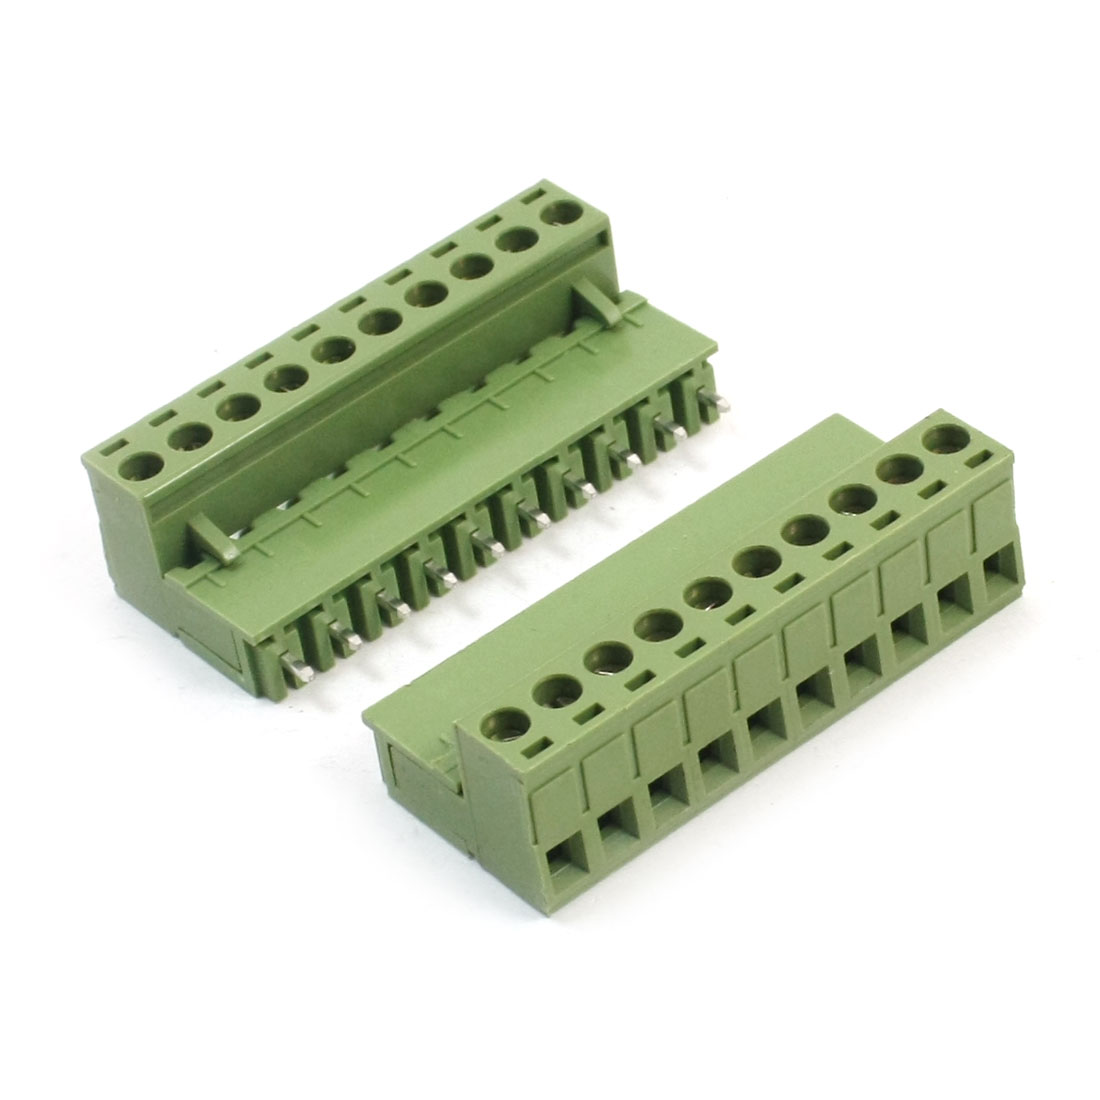 2Pcs AC300V 10A 5.08mm Pitch 10-Pin 10-Pole Pluggable PCB Mount Screw Terminal Barrier Block Connector for 12-24AWG Wire